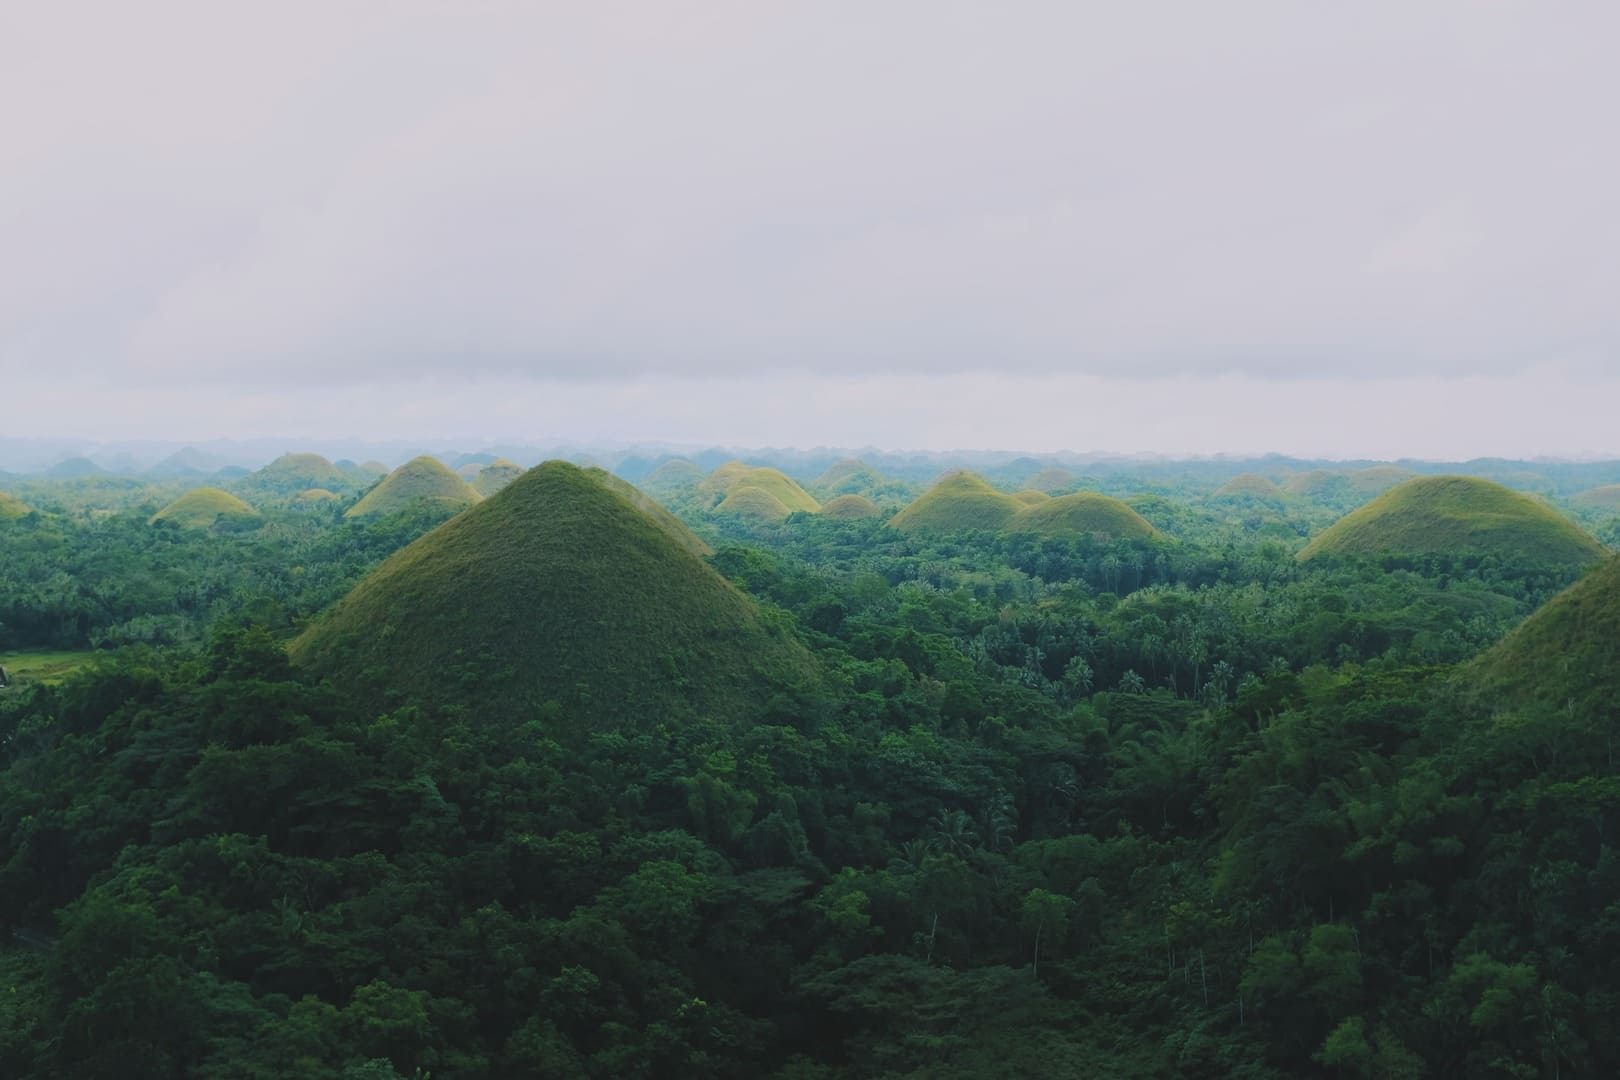 A scenic view of the Chocolate Hills in Bohol, the Philippines